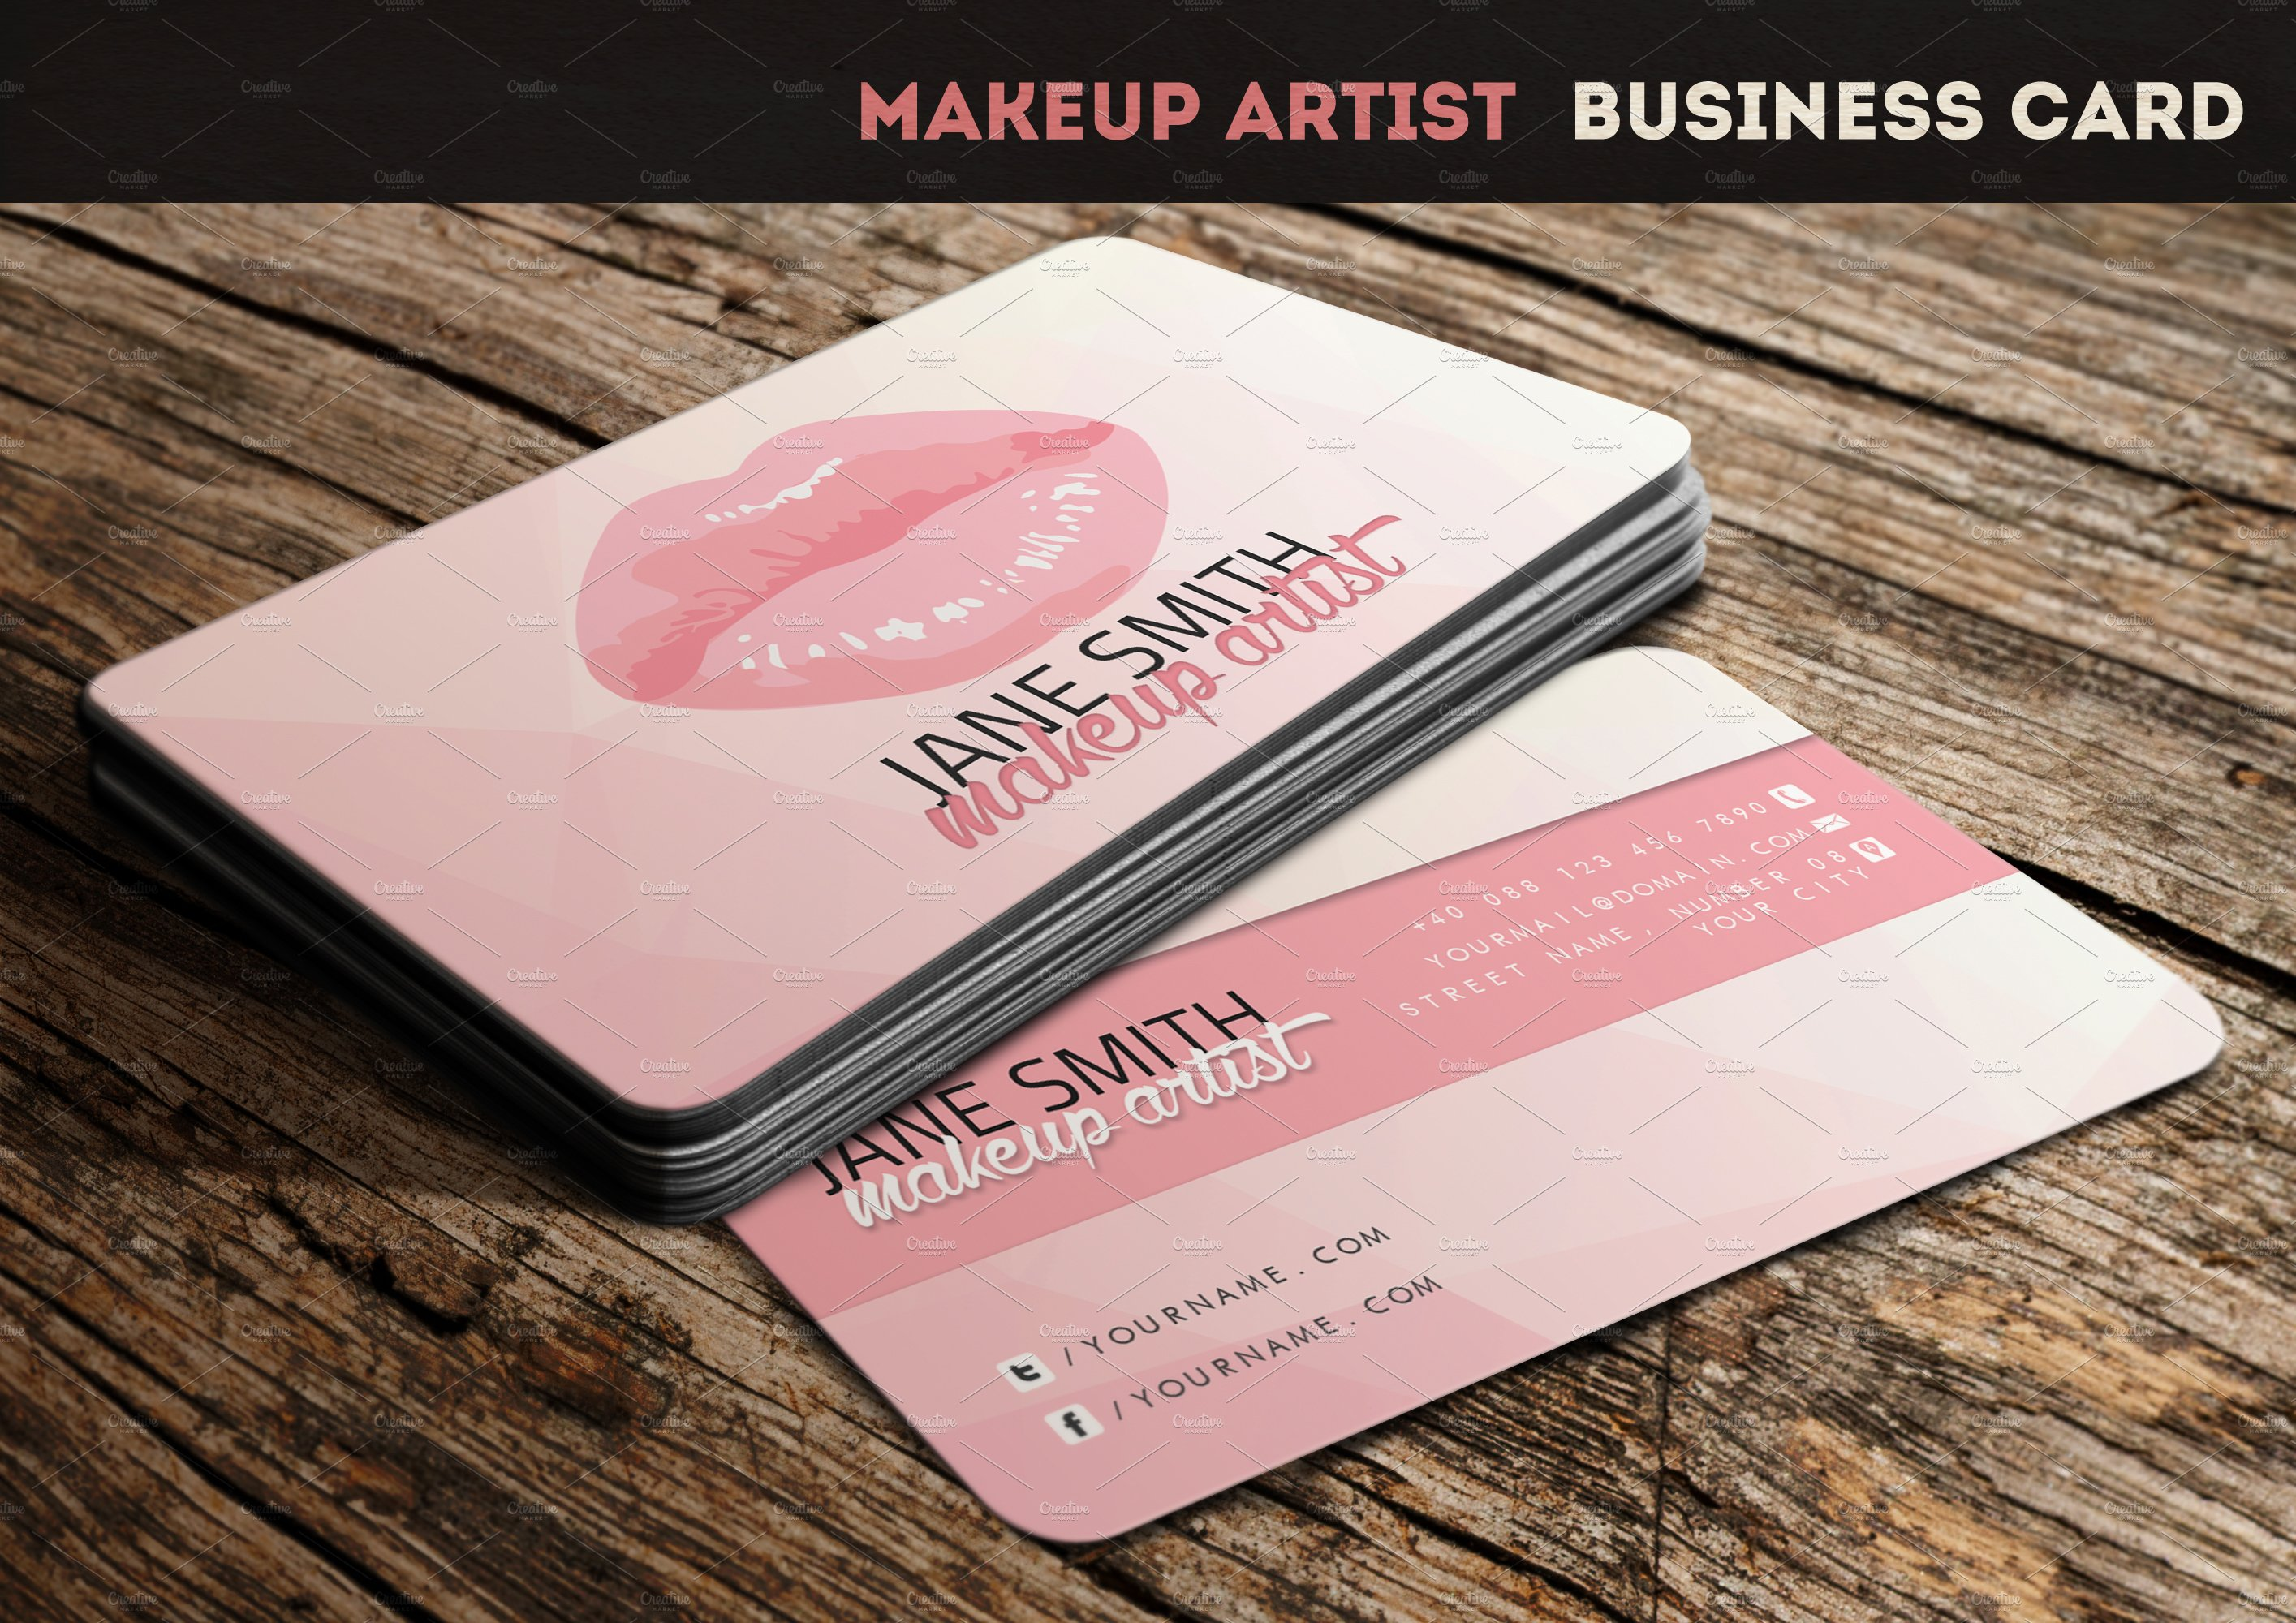 Makeup artist business card business card templates creative market flashek Image collections